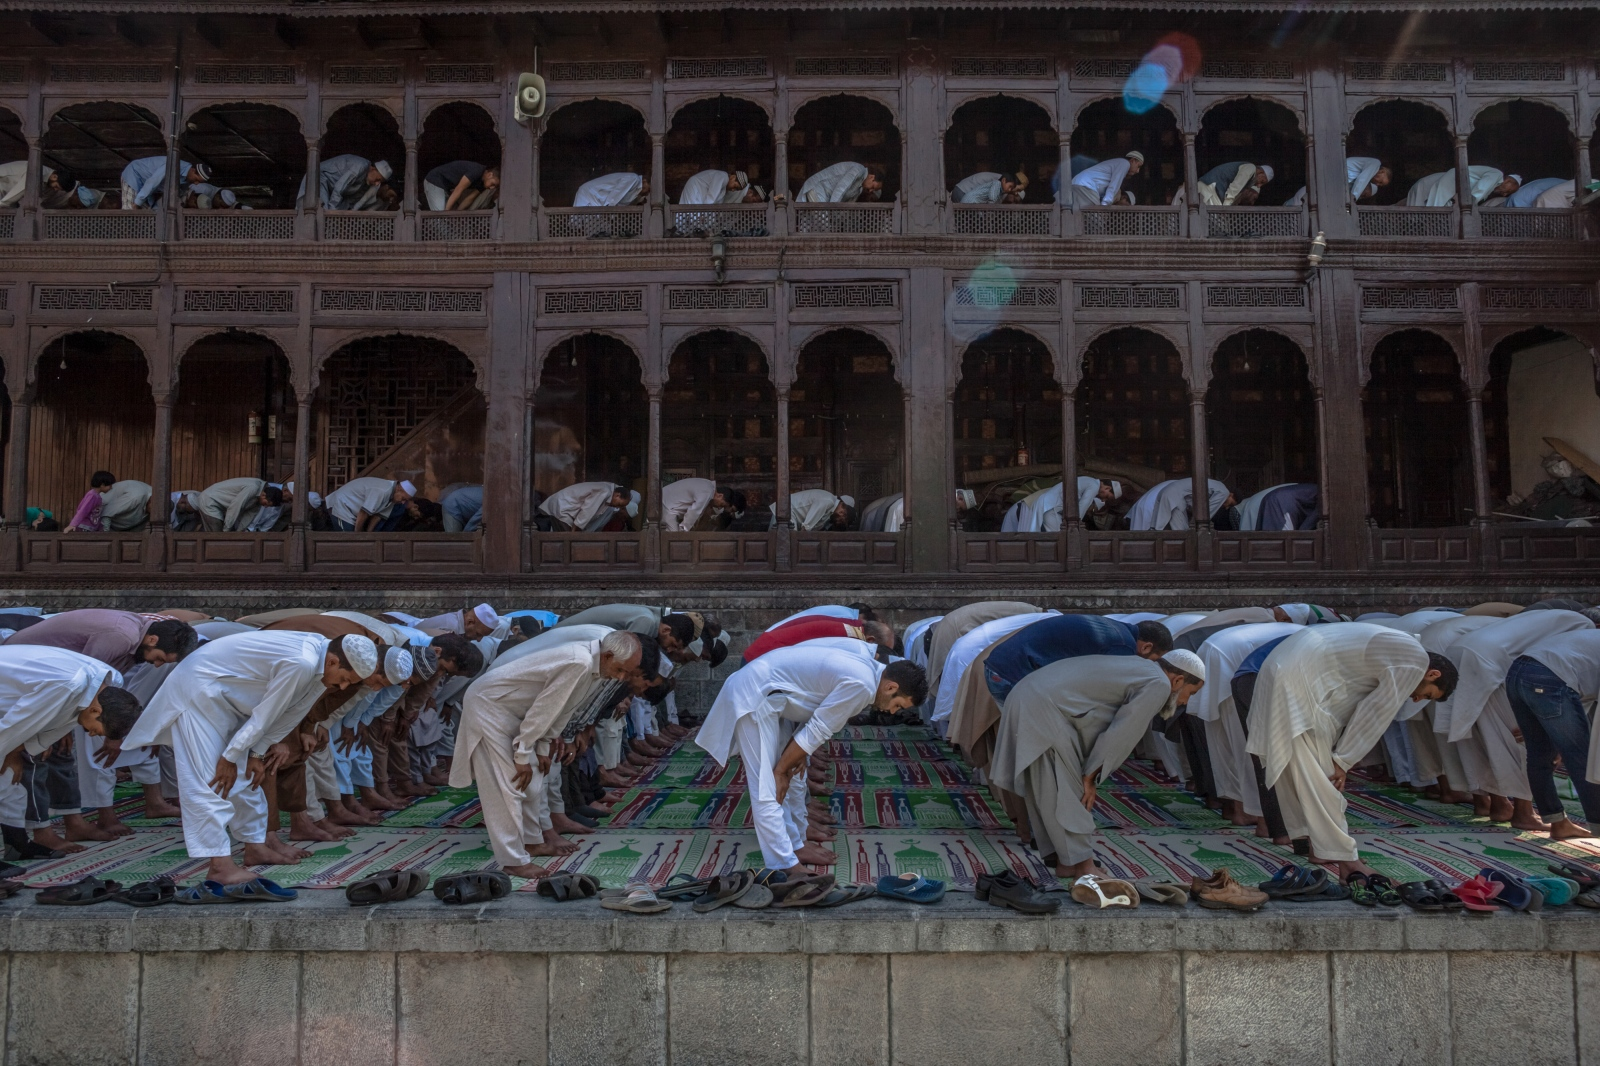 Kashmiri Muslims offer prayers to mark the urs, or death-anniversary, of Sufi scholar Mir Syed Ali Hamden at the Shah-i-Hamdan shrine, amid an ongoing curfew and strike, on the banks of the Jhelum River in Srinagar on September 9, 2016.